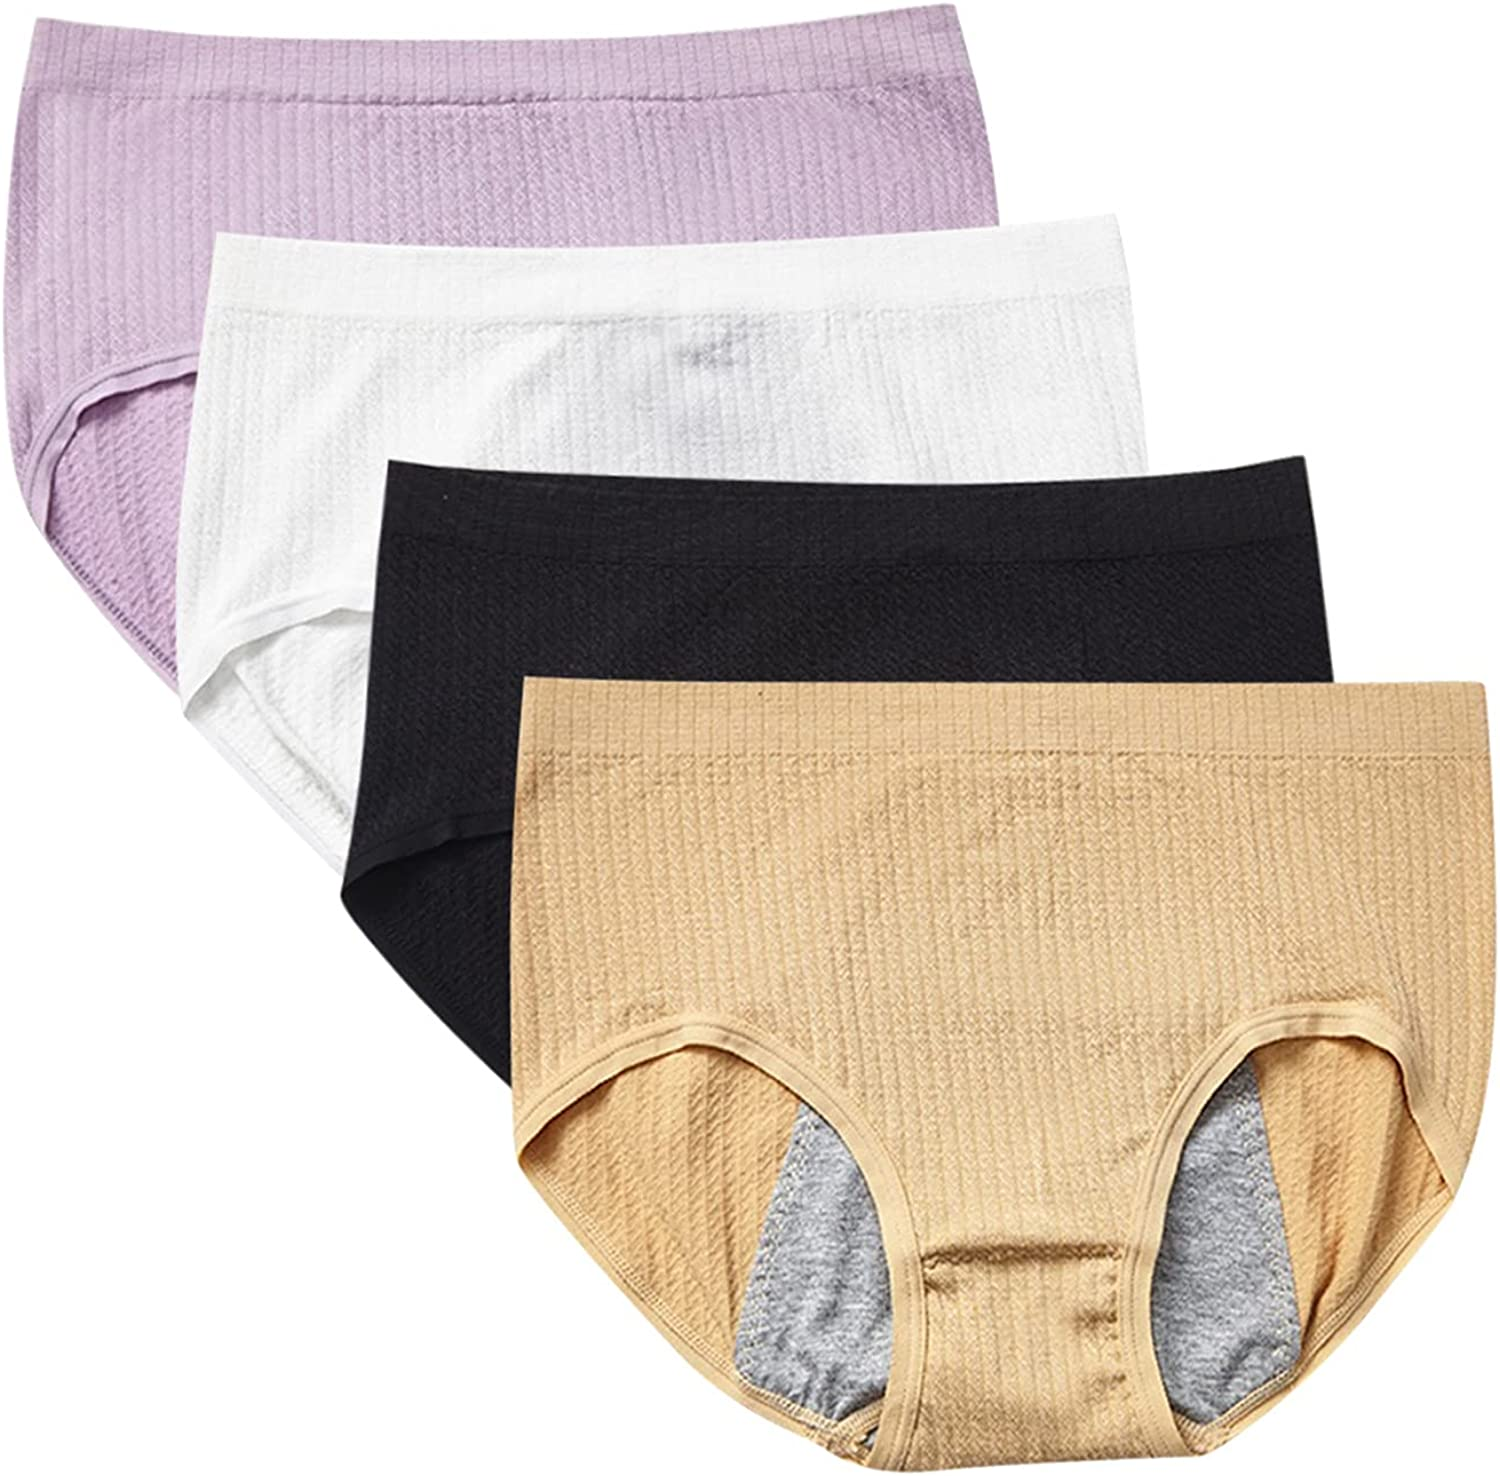 Women's Lace Leakproof Underwear Panties 1 Pack Ranking TOP1 Sexy Opening large release sale 4 S Briefs